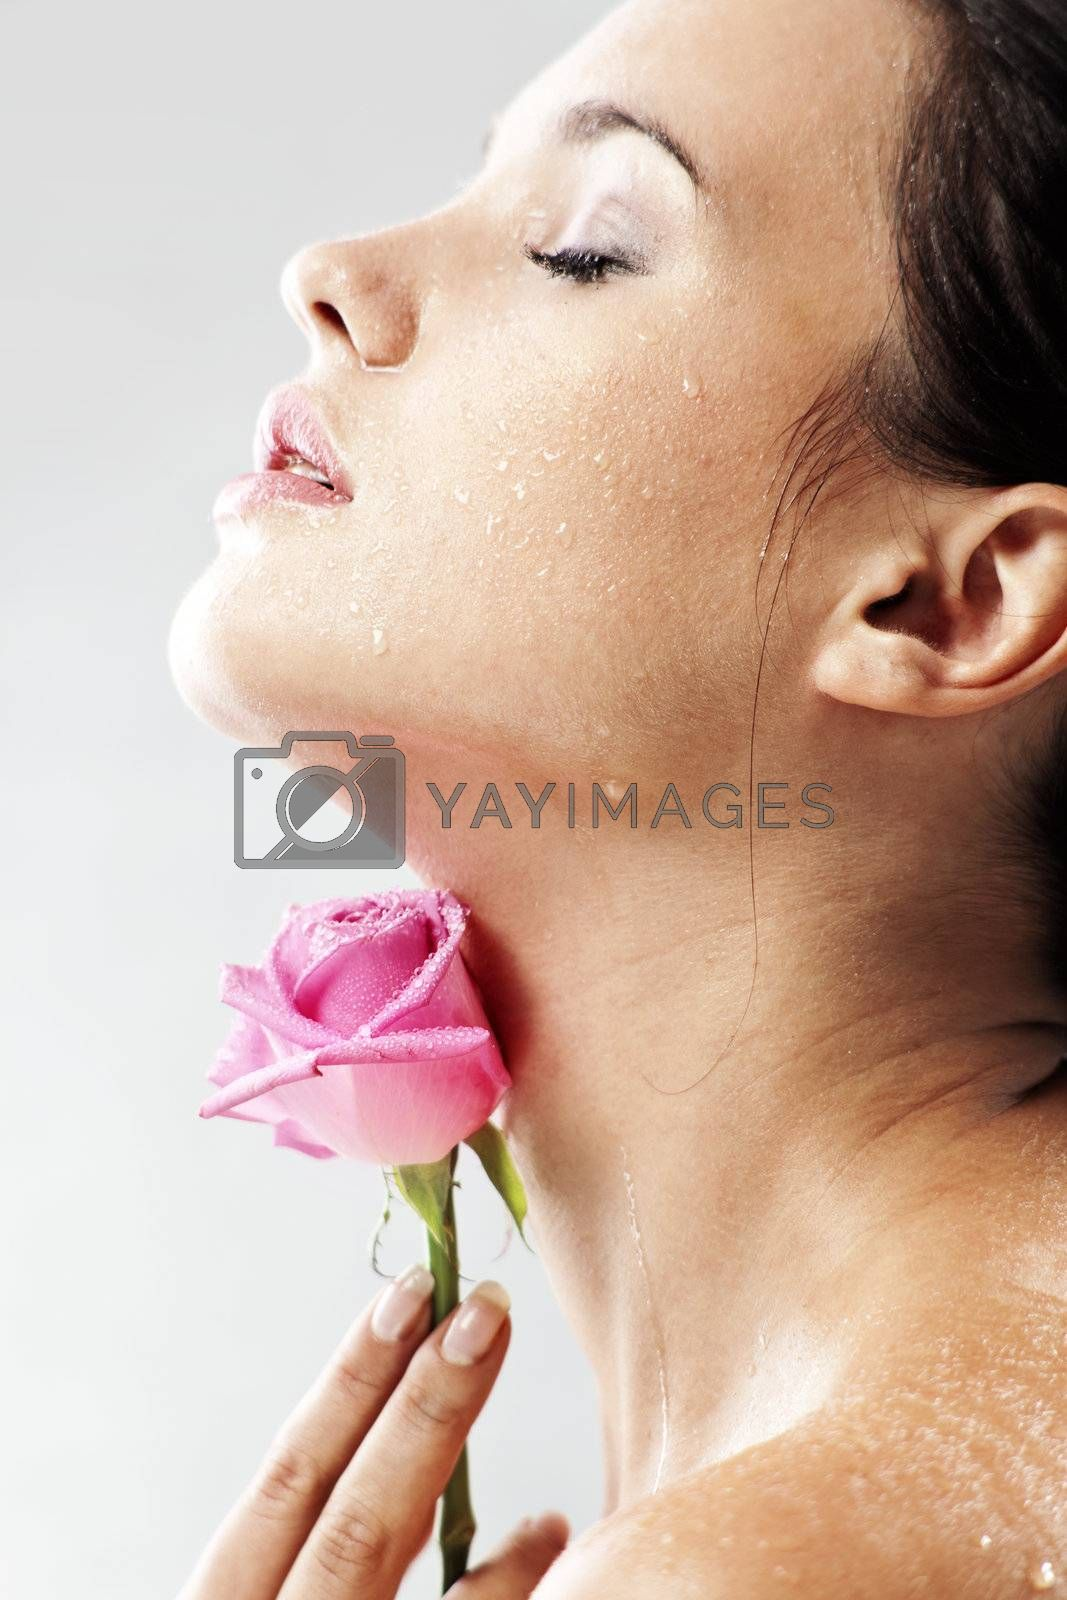 Studio portrait of sensual beautiful woman with rose and water droplets on her face